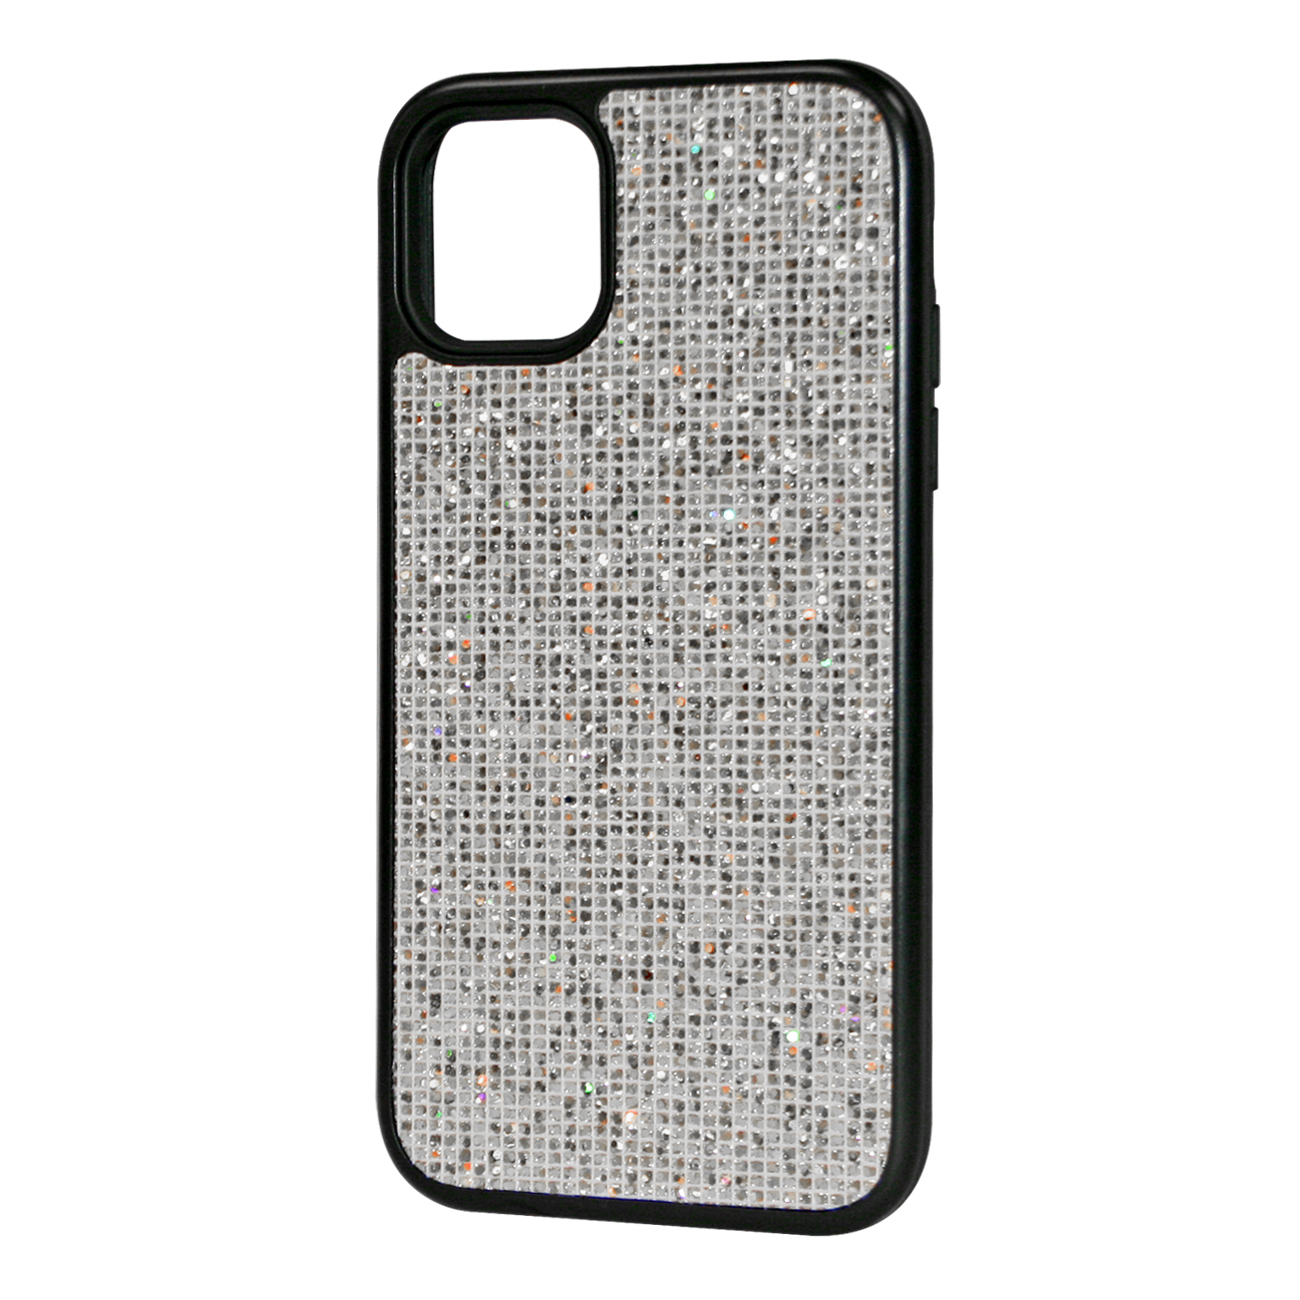 DIAMOND RHINESTONE Case For APPLE IPHONE 11 PRO In Silver